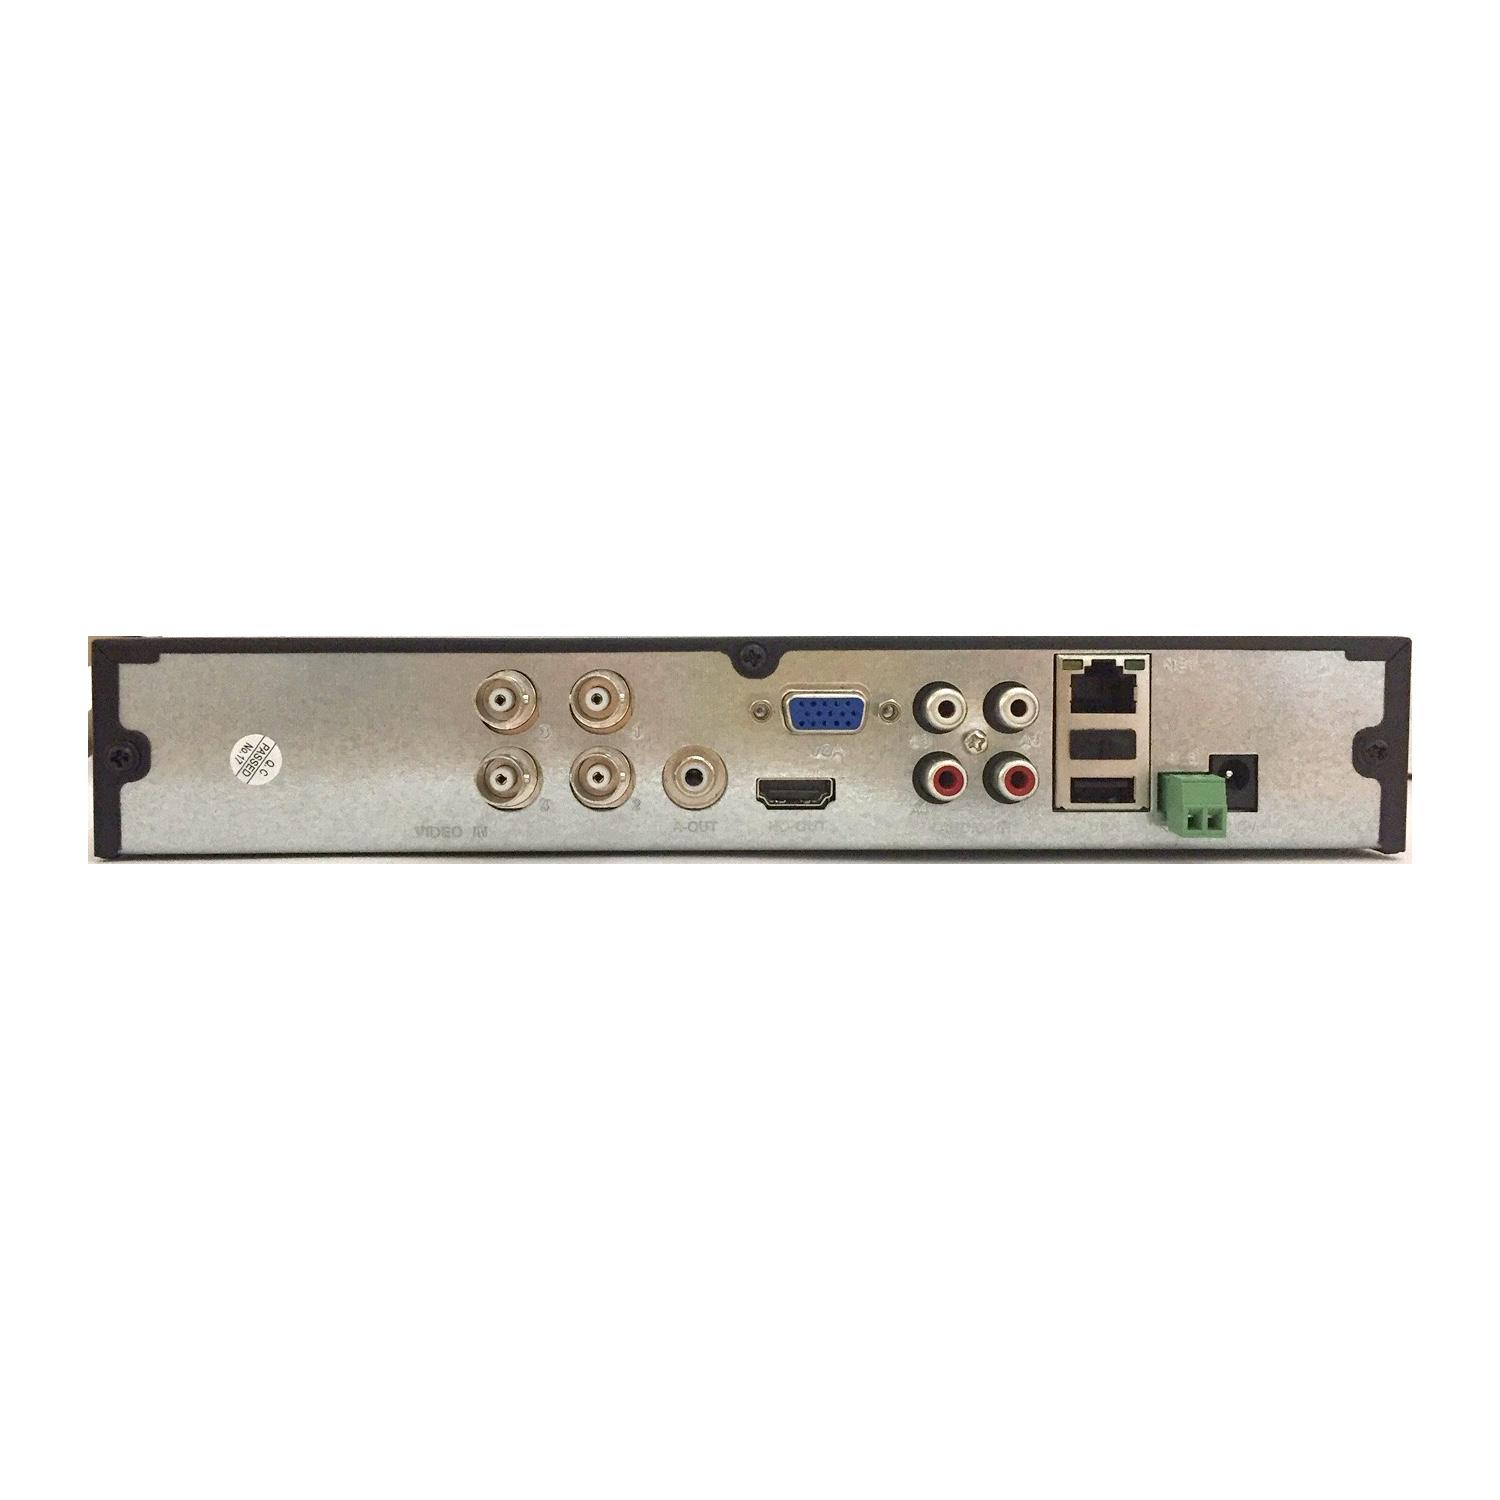 Xvr 4 canali ahd/cvi/tvi/ip 2m/5m lite  - NVR - Network Video Recorder | Lorwen.it